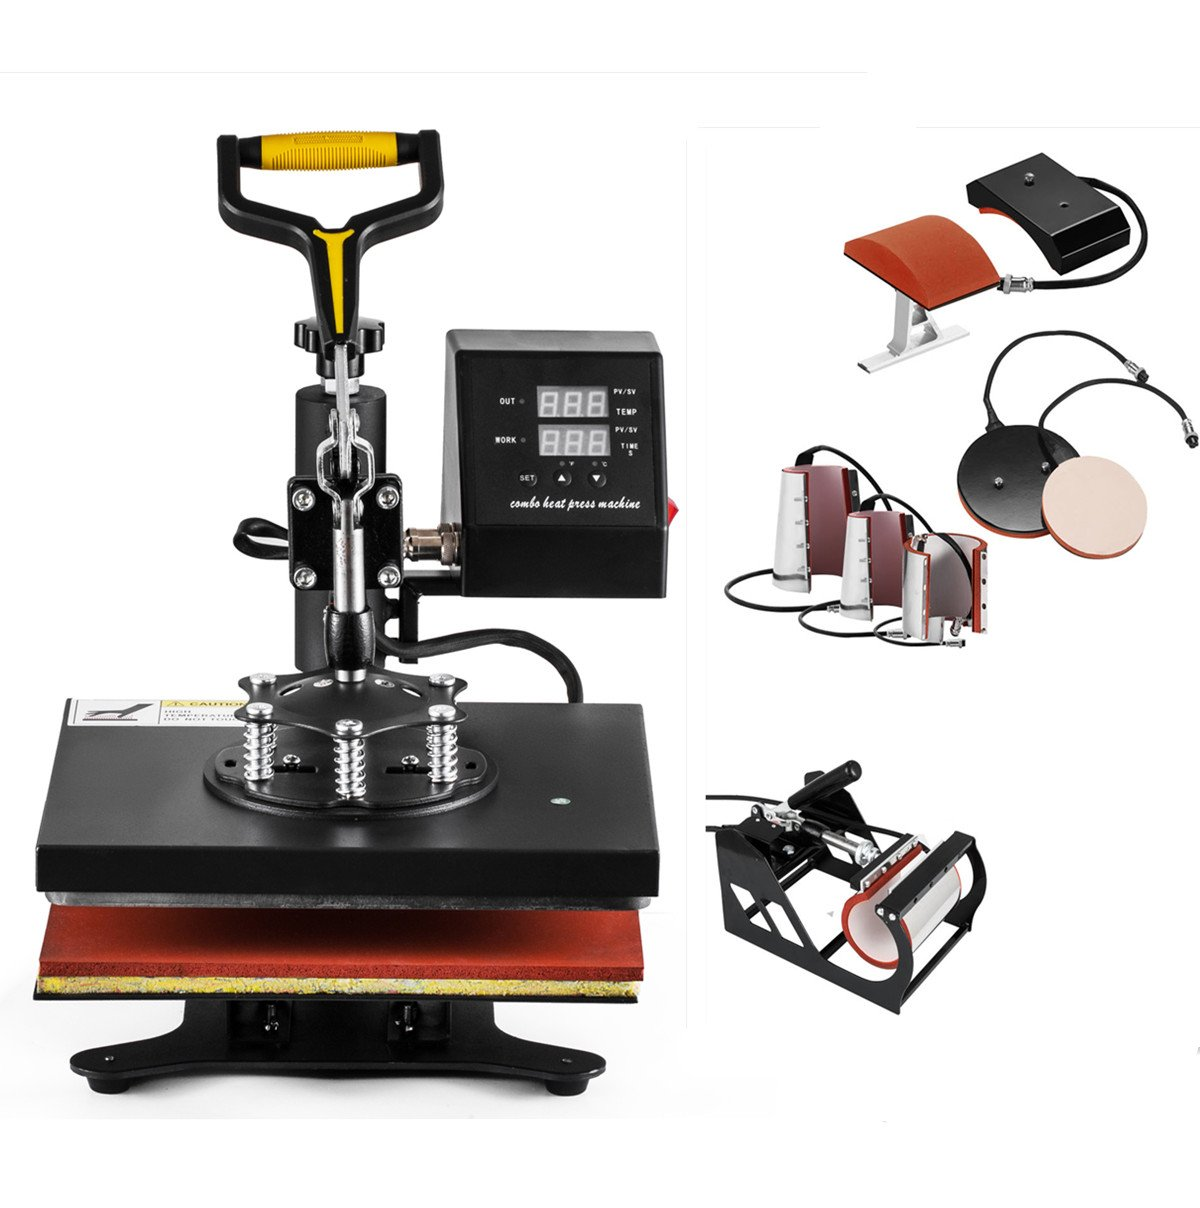 SmarketBuy 8 in 1 Digital Multifunctional Heat Press Machine 12